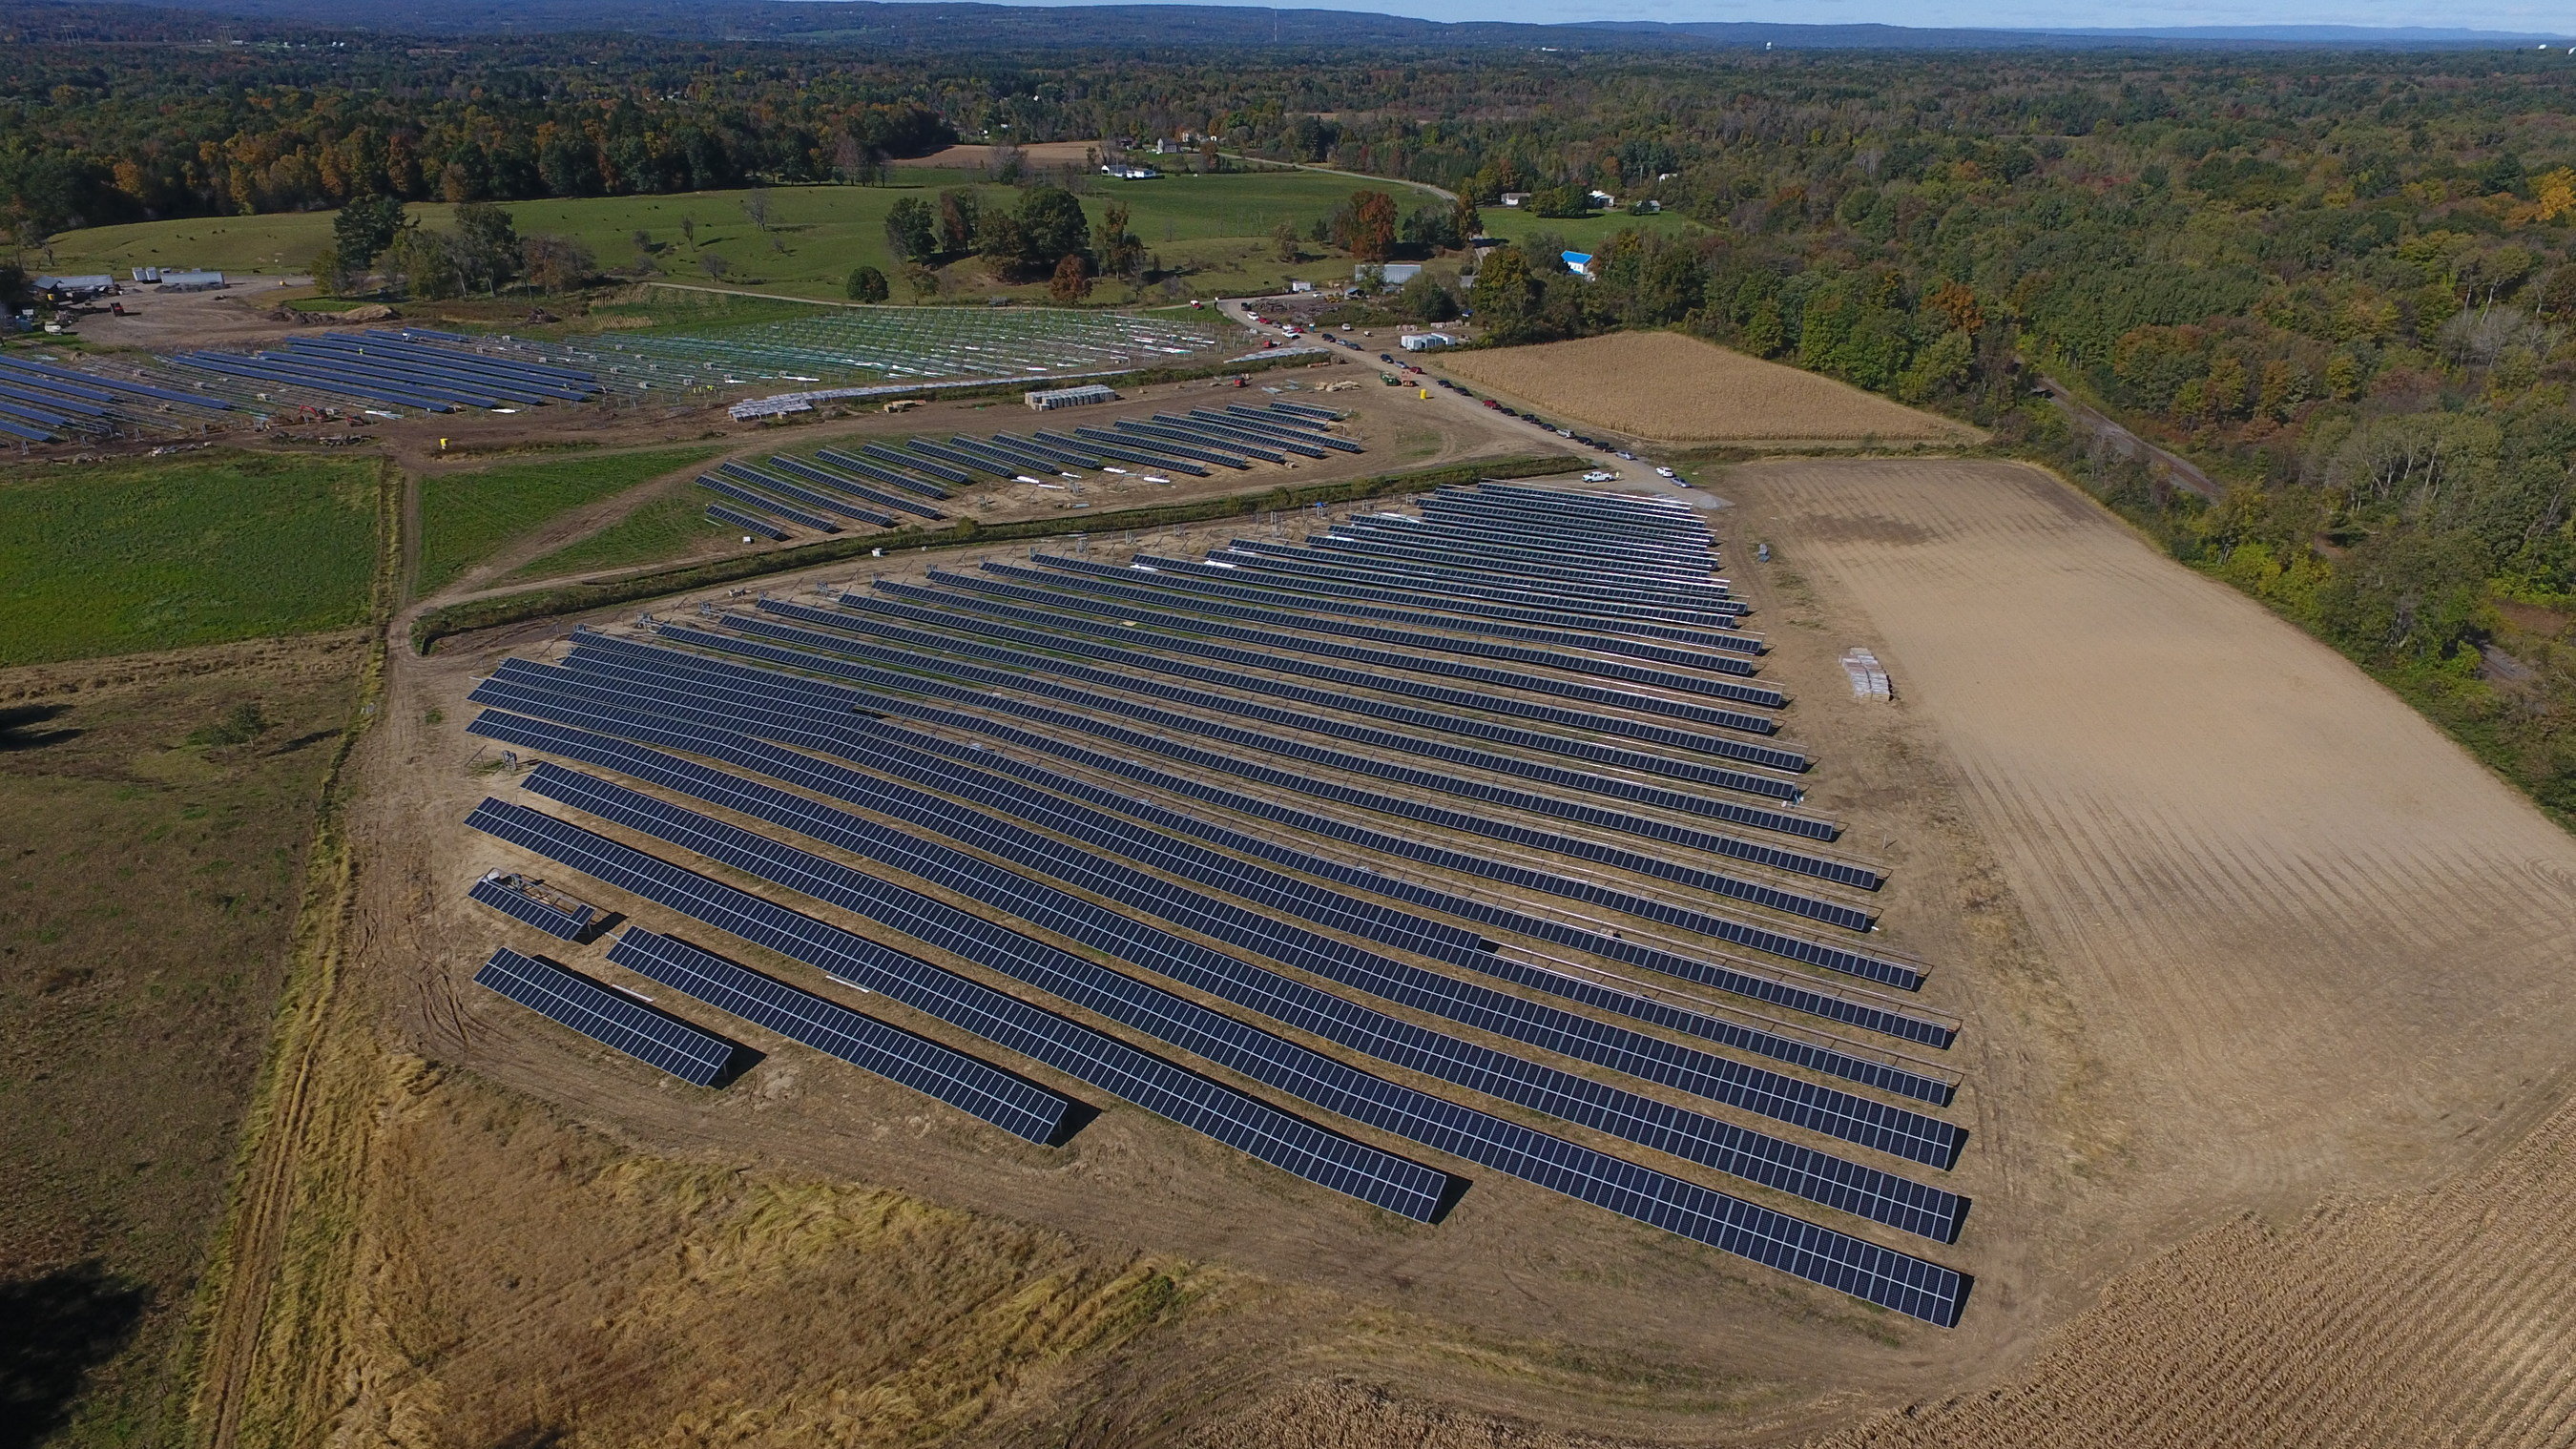 Capital Region Community Solar Garden